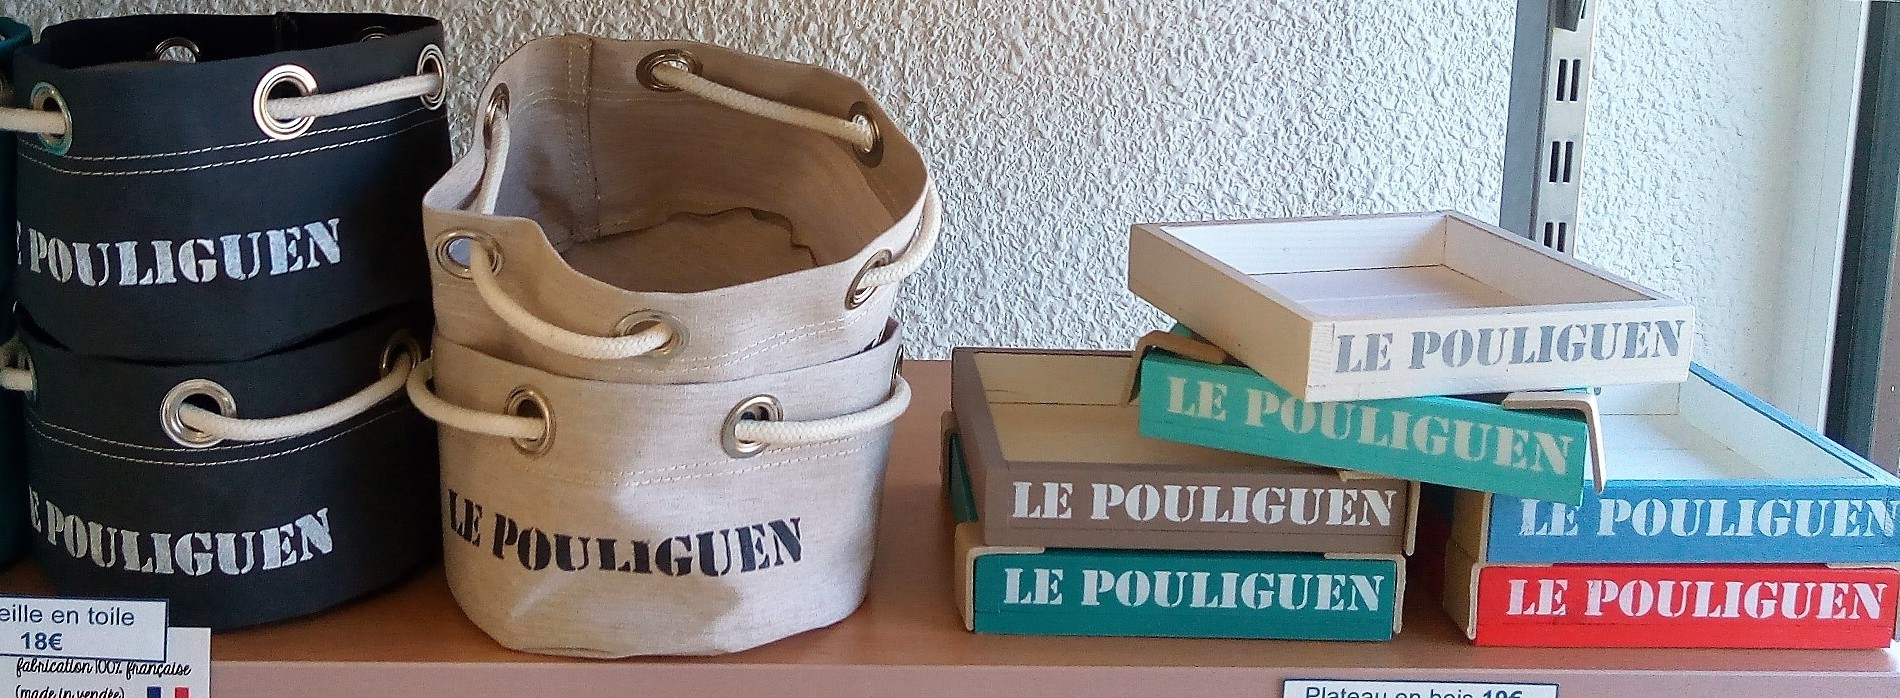 La Boutique de l'Office de Tourisme - Pouliguen